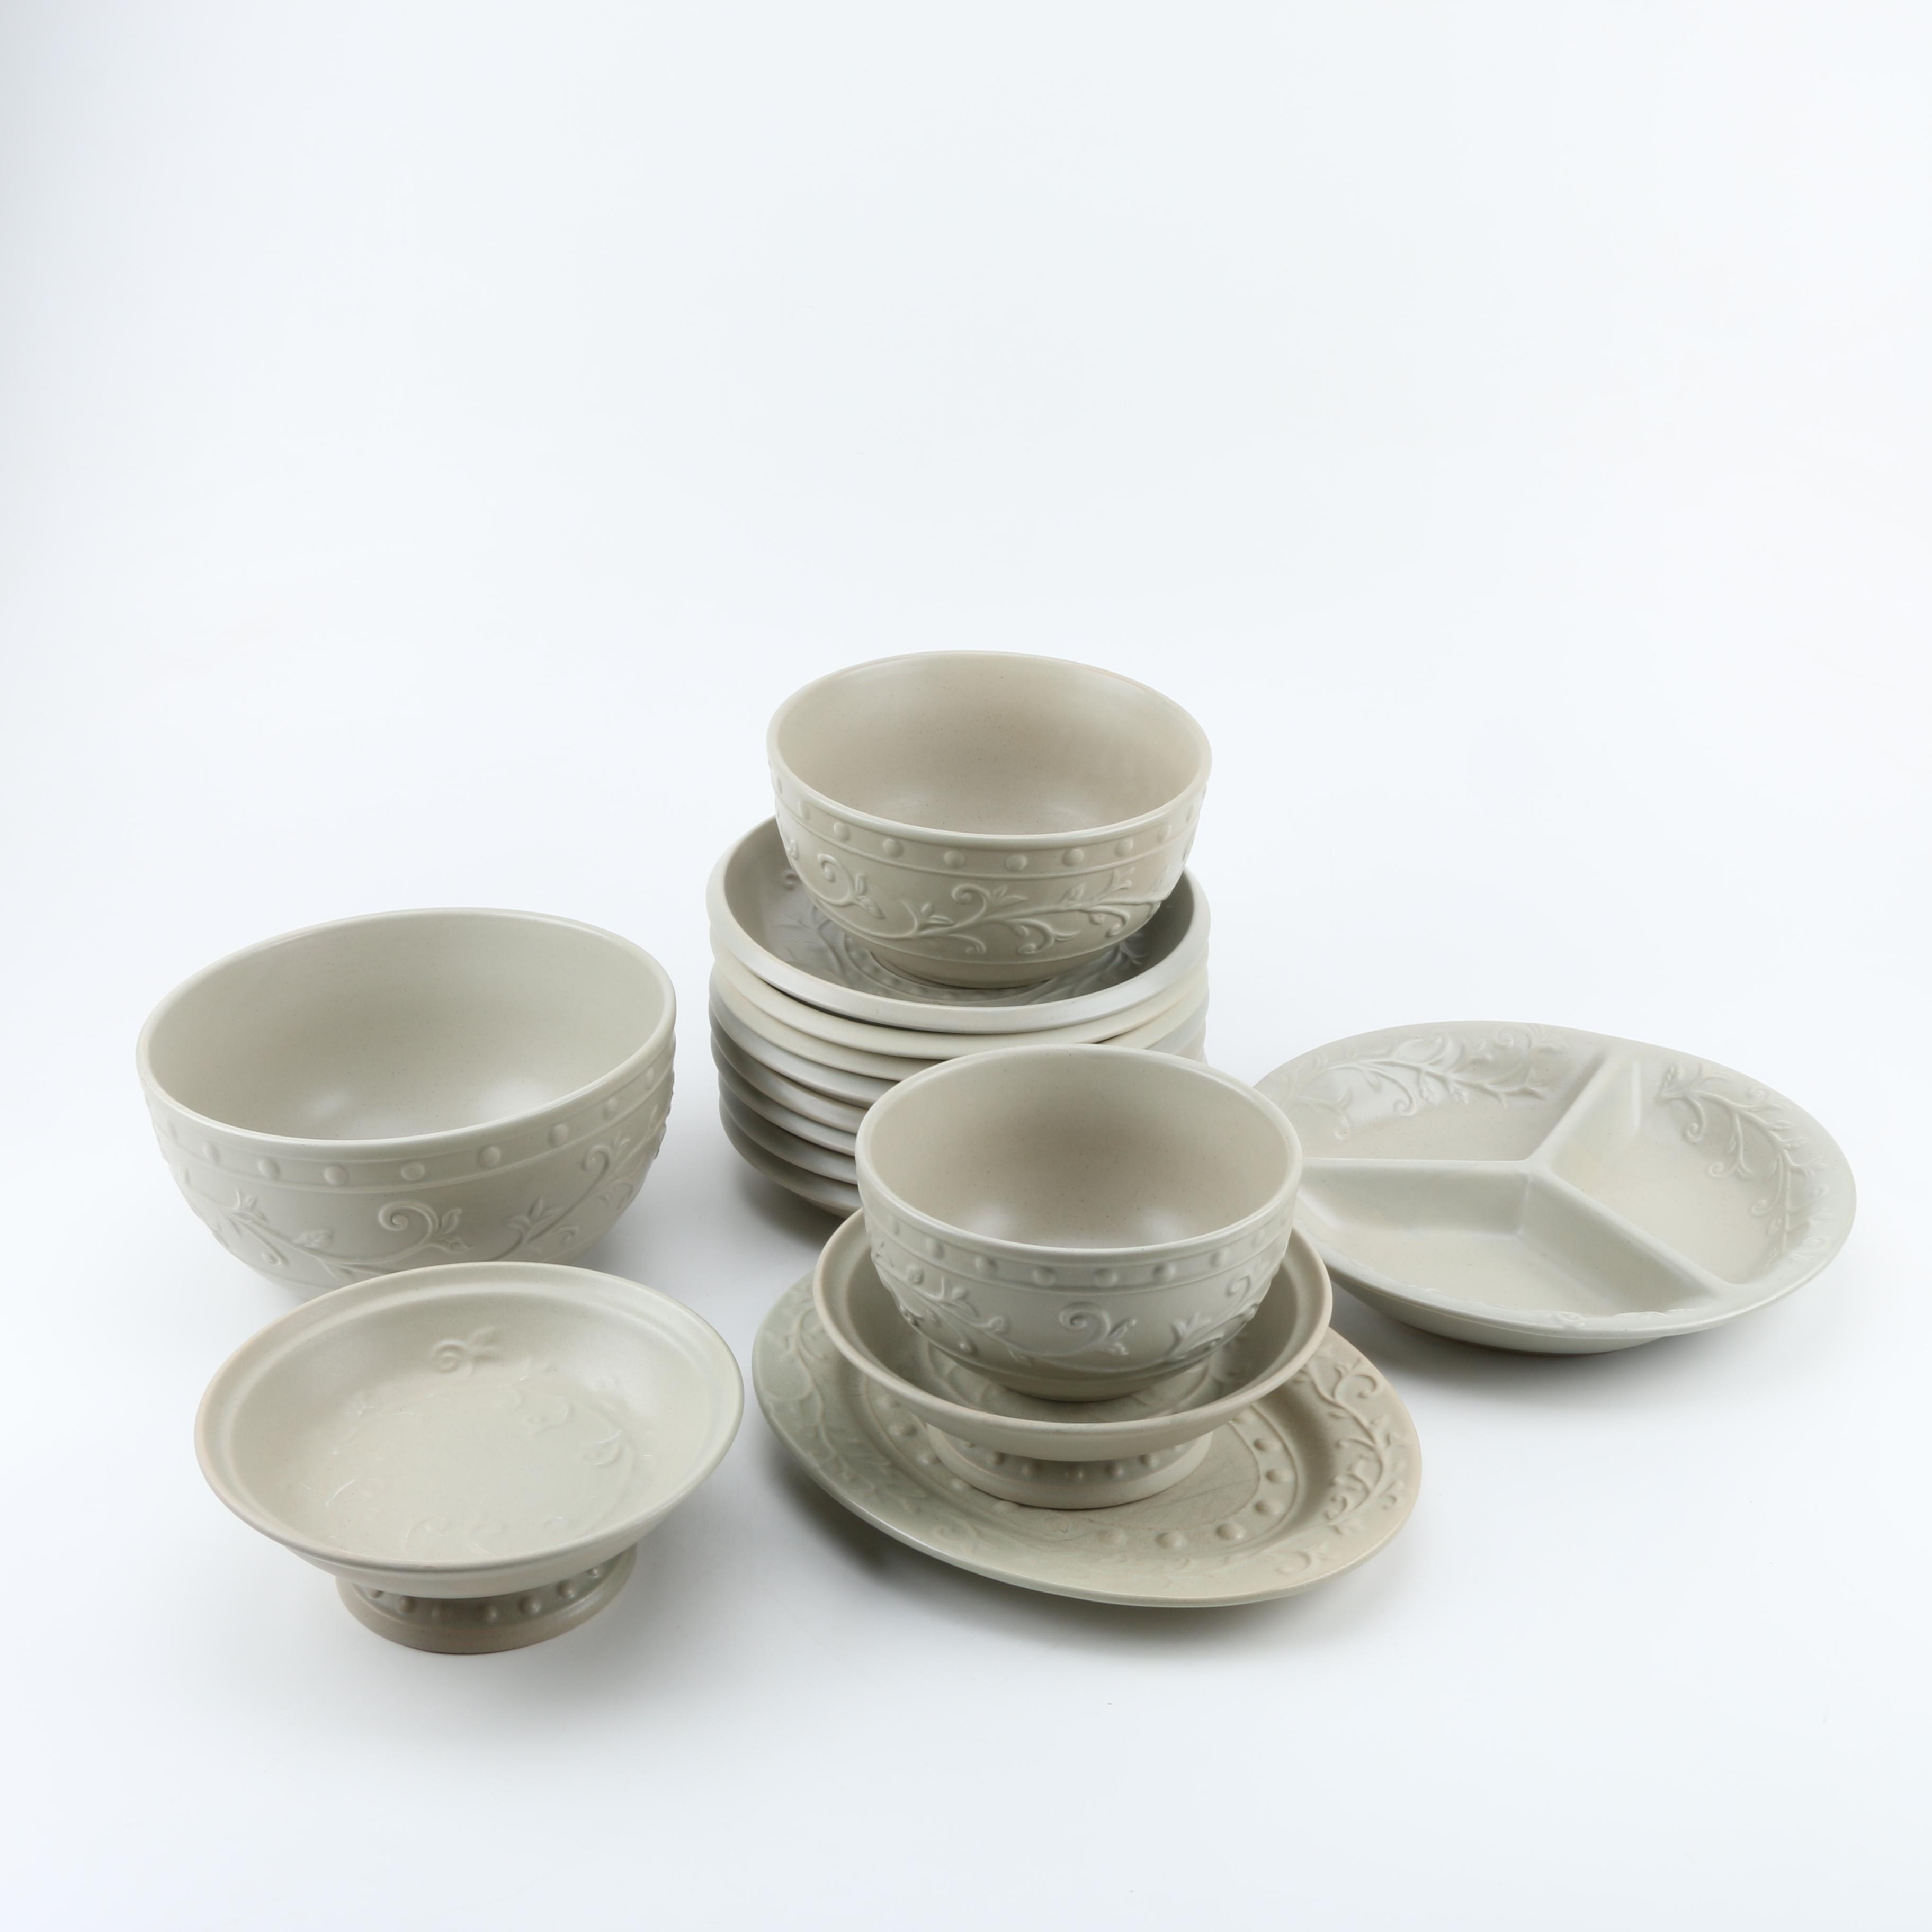 Stoneware Tableware and Mixing Bowls